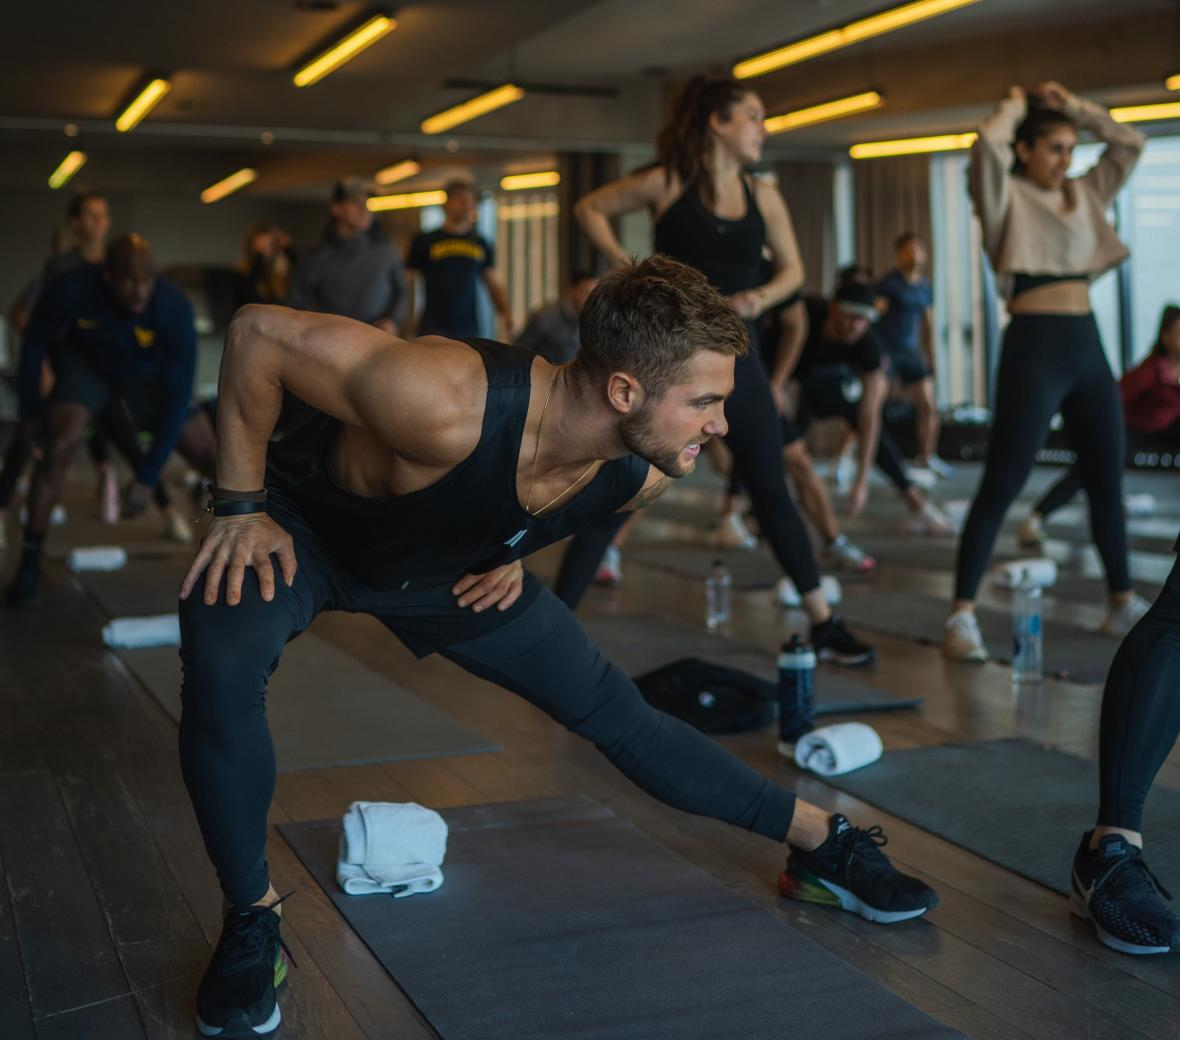 A fitness class led by Devon Levesque at 1 Hotel Brooklyn Bridge.